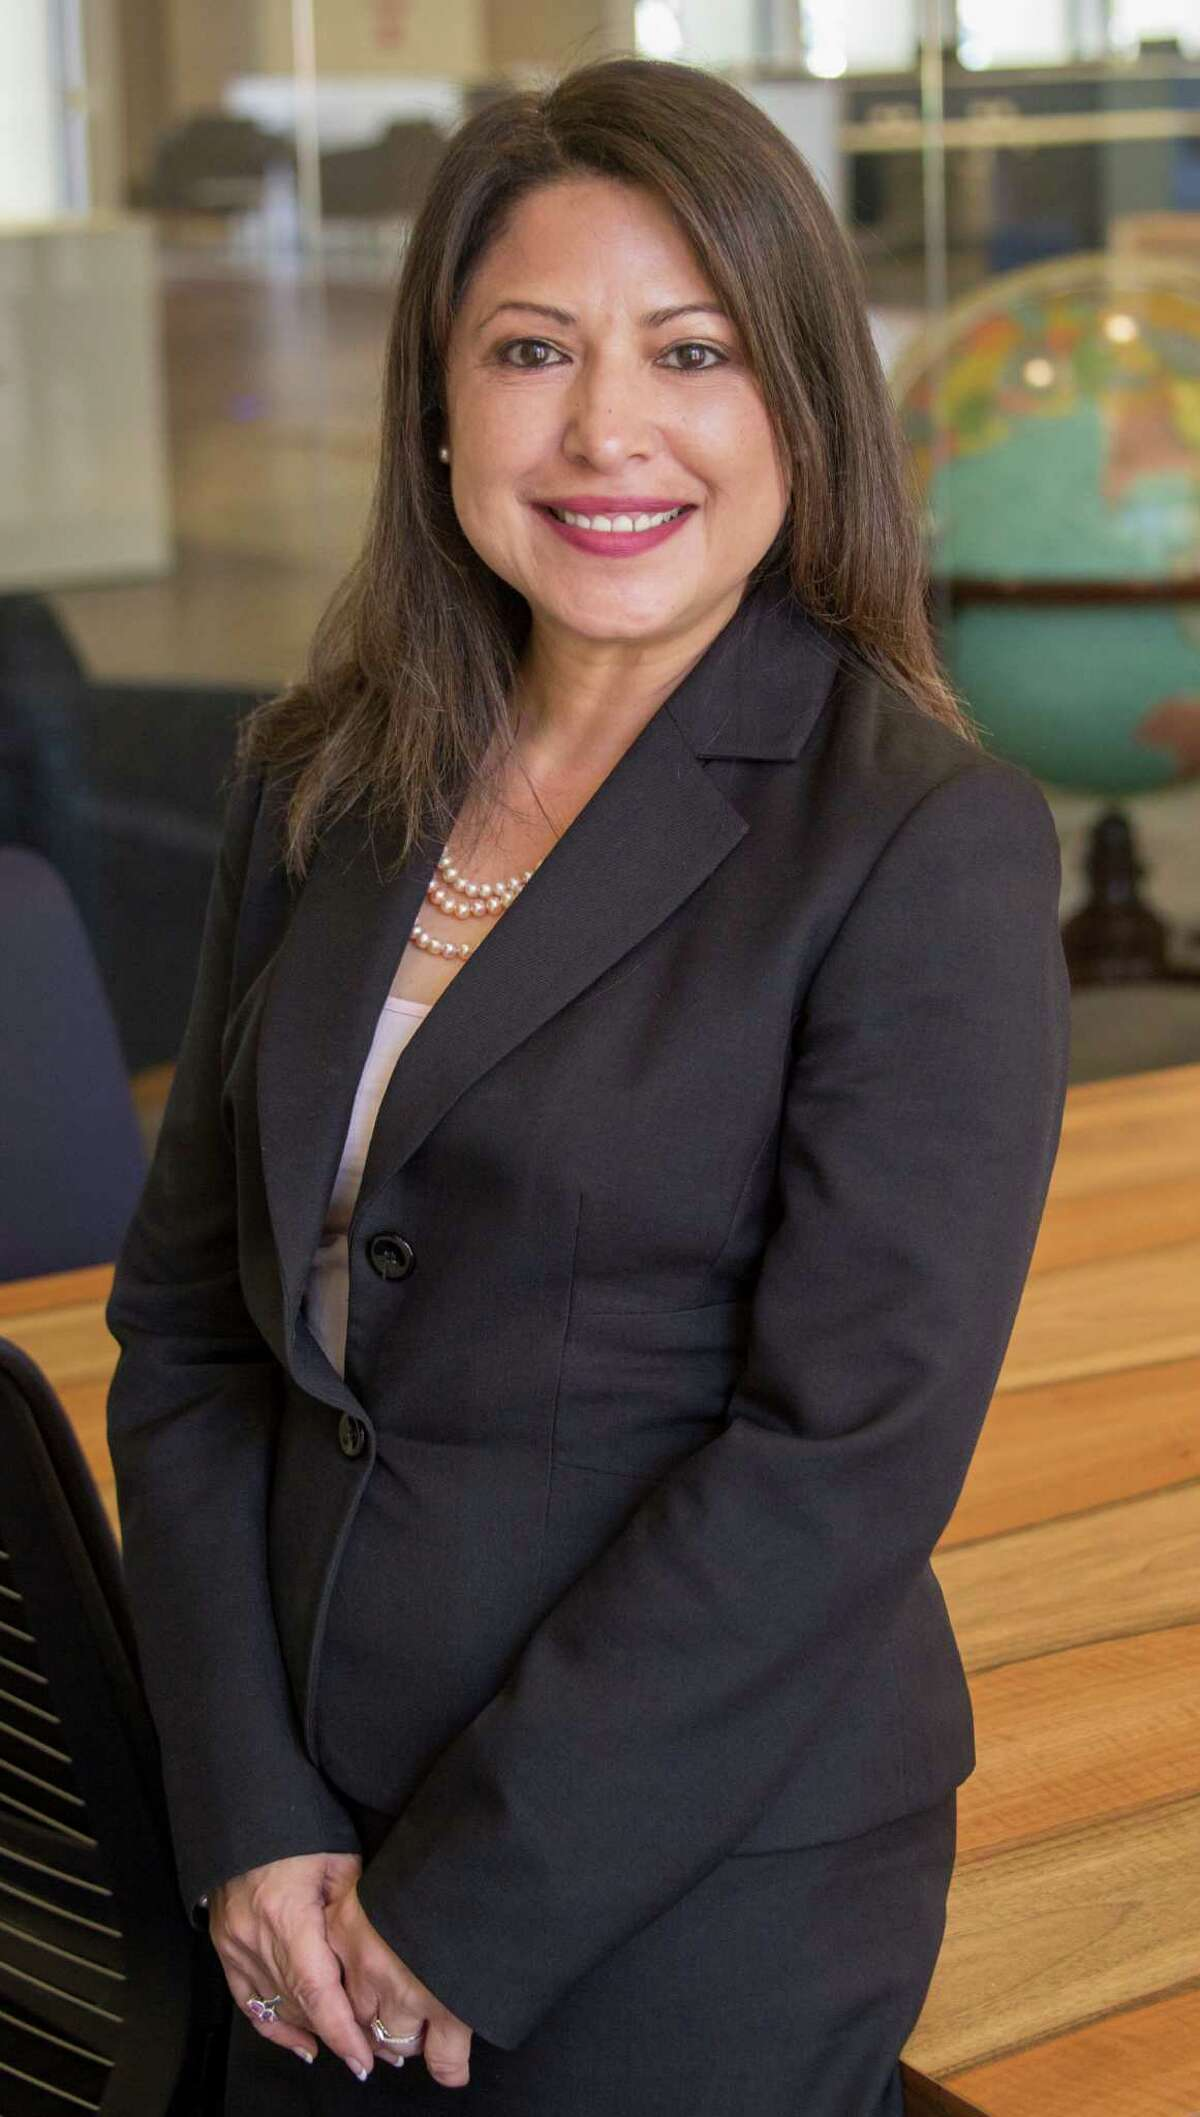 Mary Ann Perez is a candidate for District 144 State Representative shown Tuesday August 23, 2016. (JeremyCarter/ Houston Chronicle) Assignment ID: 00068545G